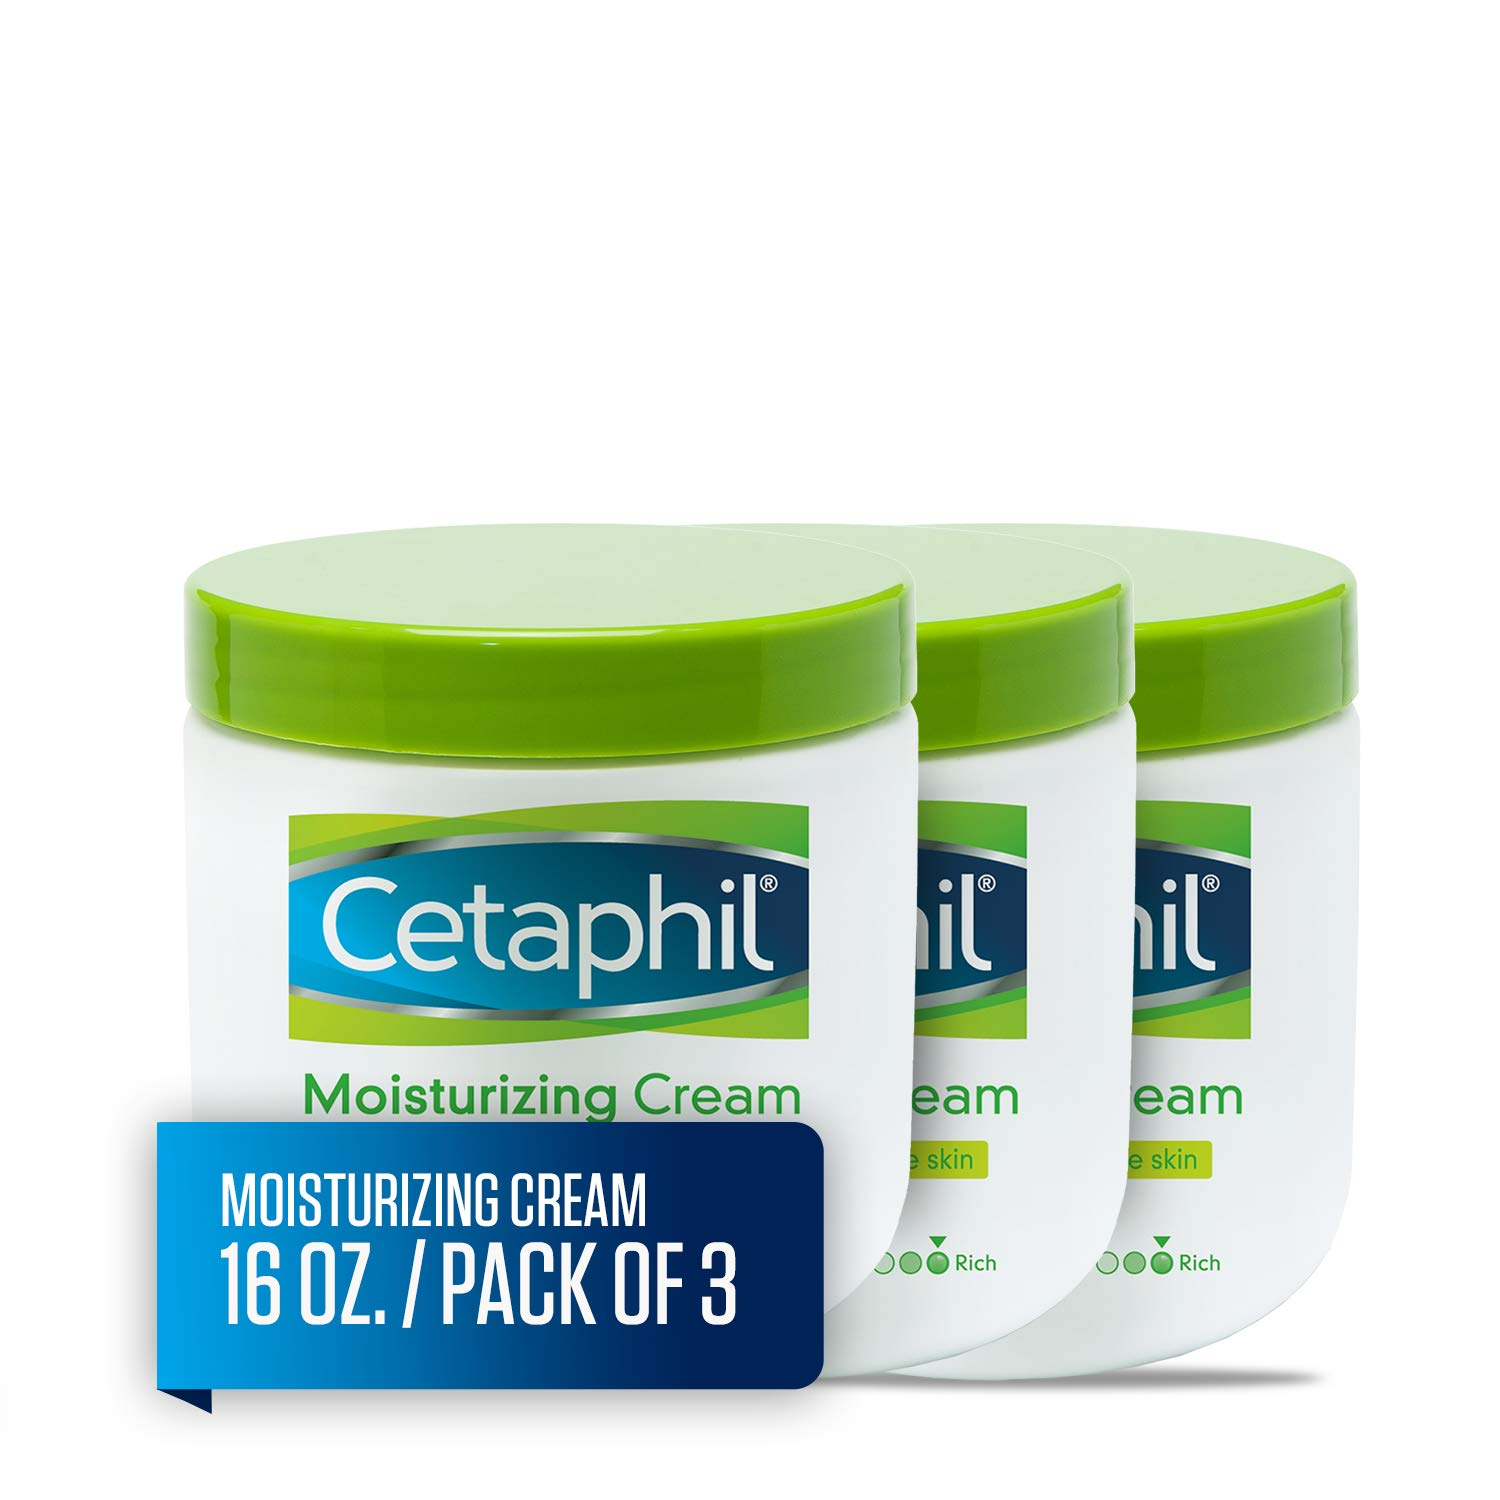 Cetaphil Moisturizing Cream for Very Dry/Sensitive Skin, Fragrance Free, 16 Ounce, Pack of 3 by Cetaphil (Image #1)